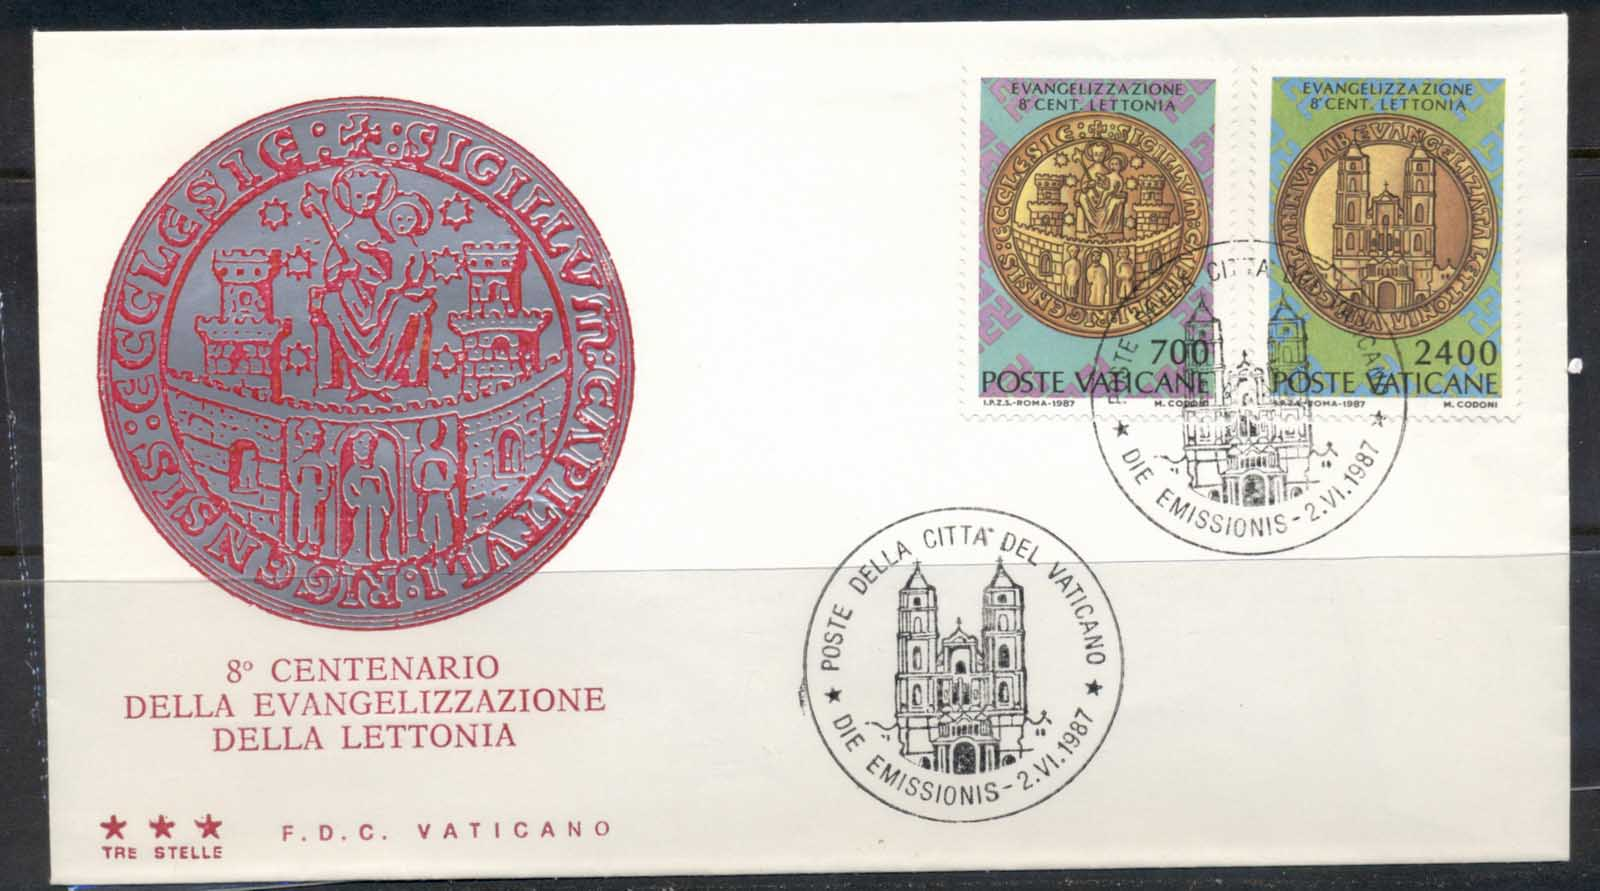 Vatican 1987 Christianization of Latvia FDC